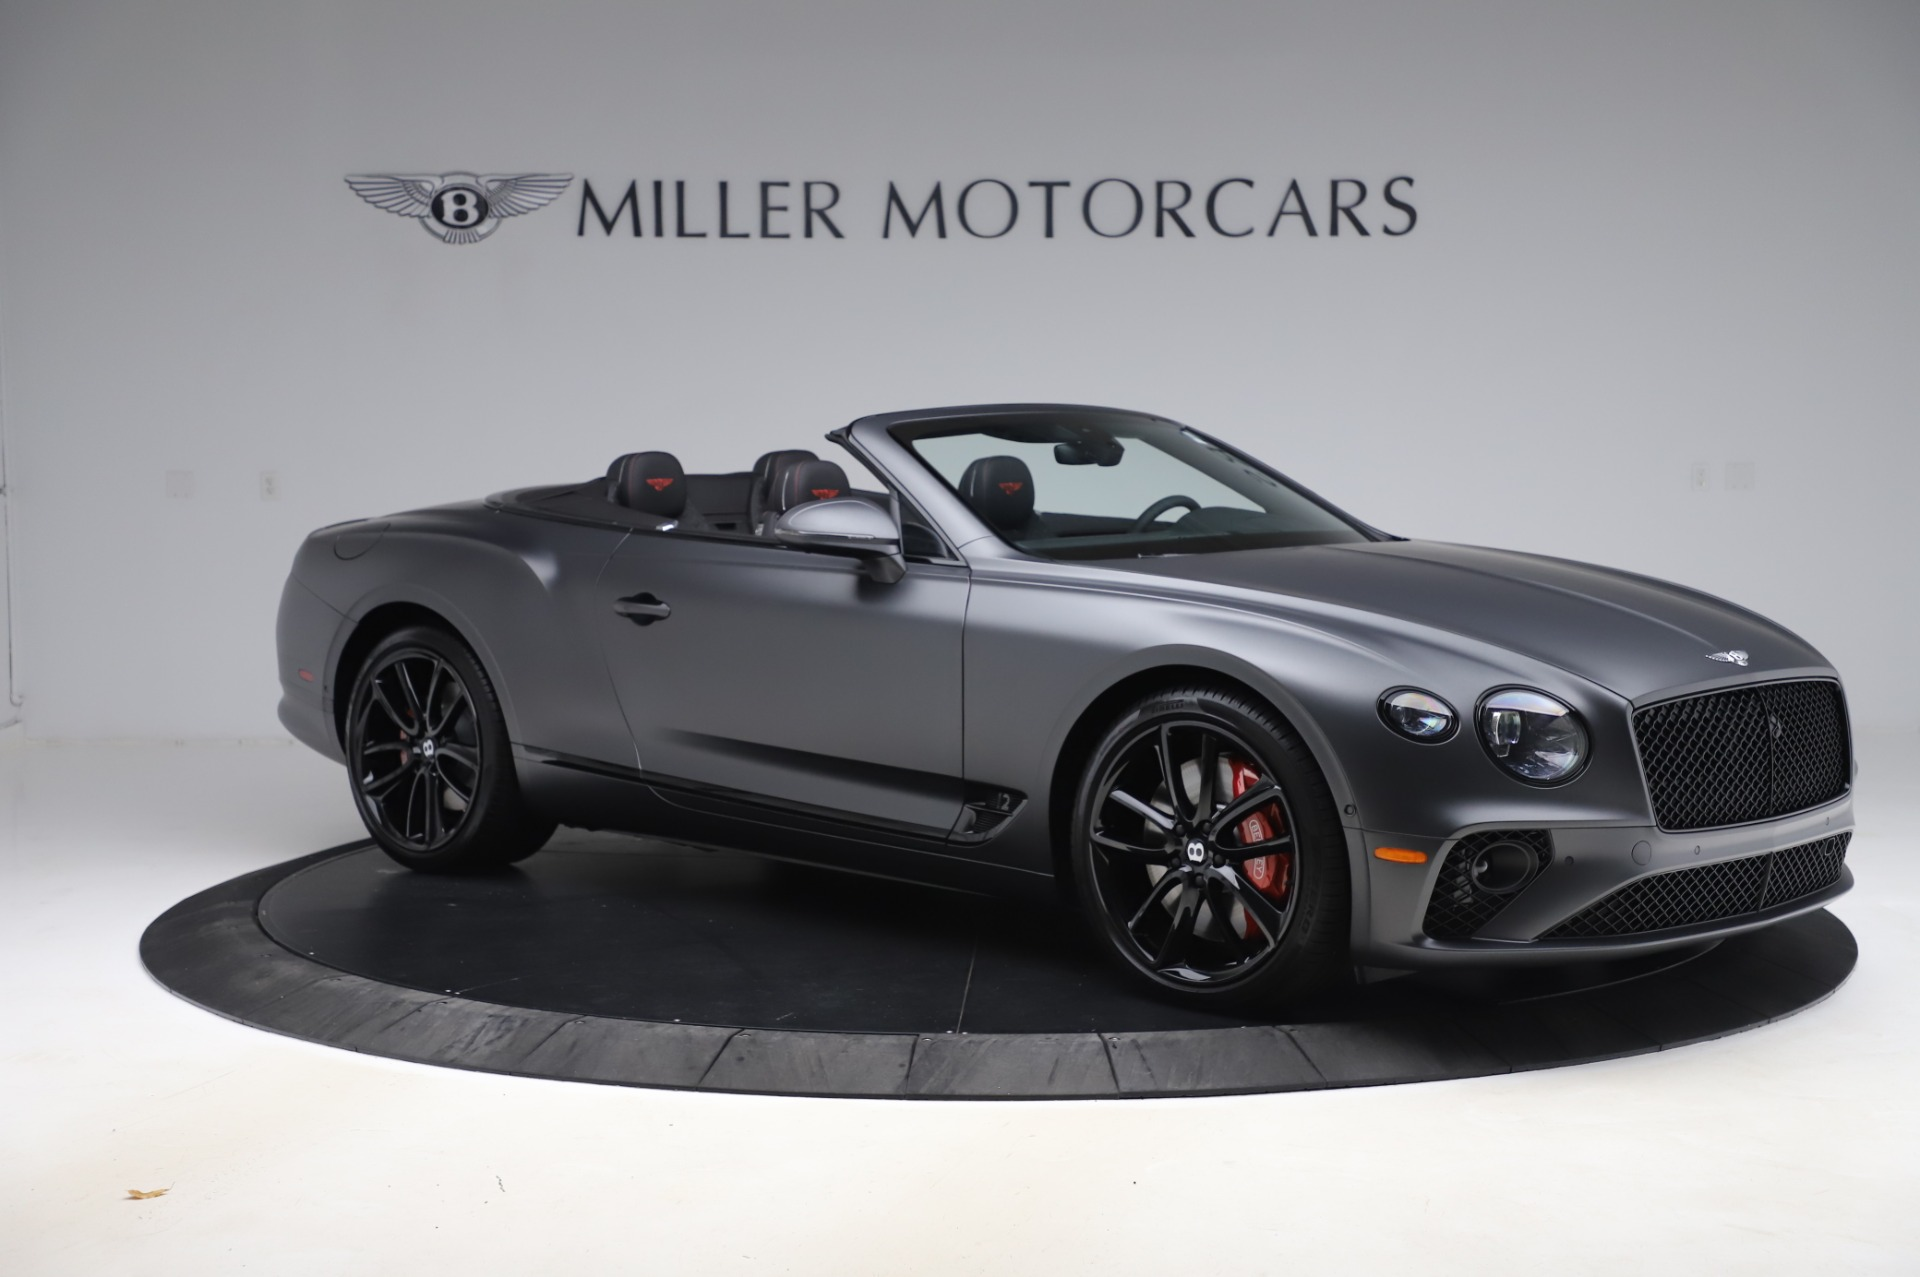 New 2020 Bentley Continental Gtc W12 For Sale Miller Motorcars Stock B1530